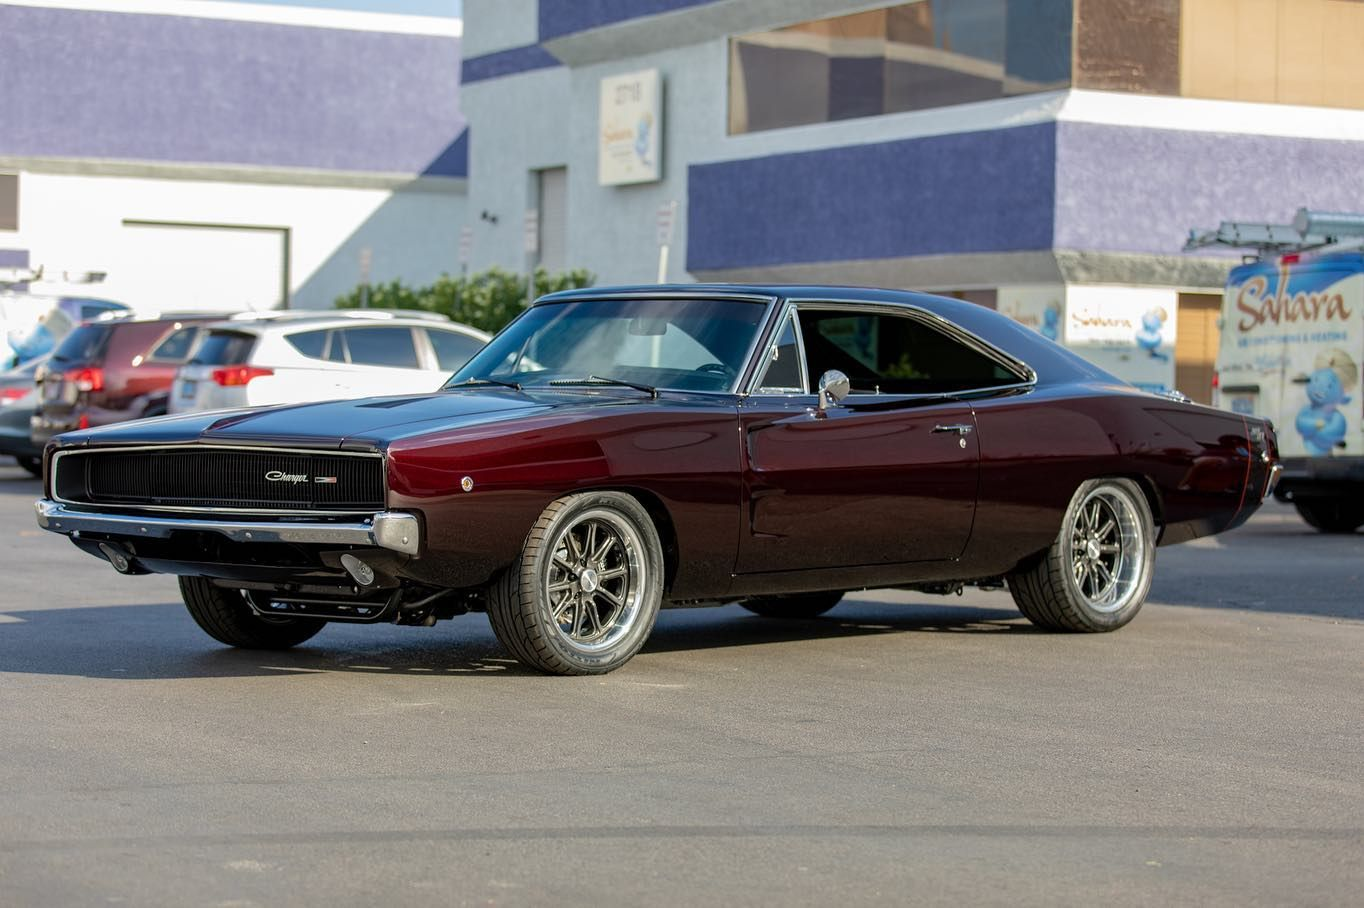 1968 Dodge Charger -Counts Kustoms   1968 dodge charger, Dodge charger,  Counting cars